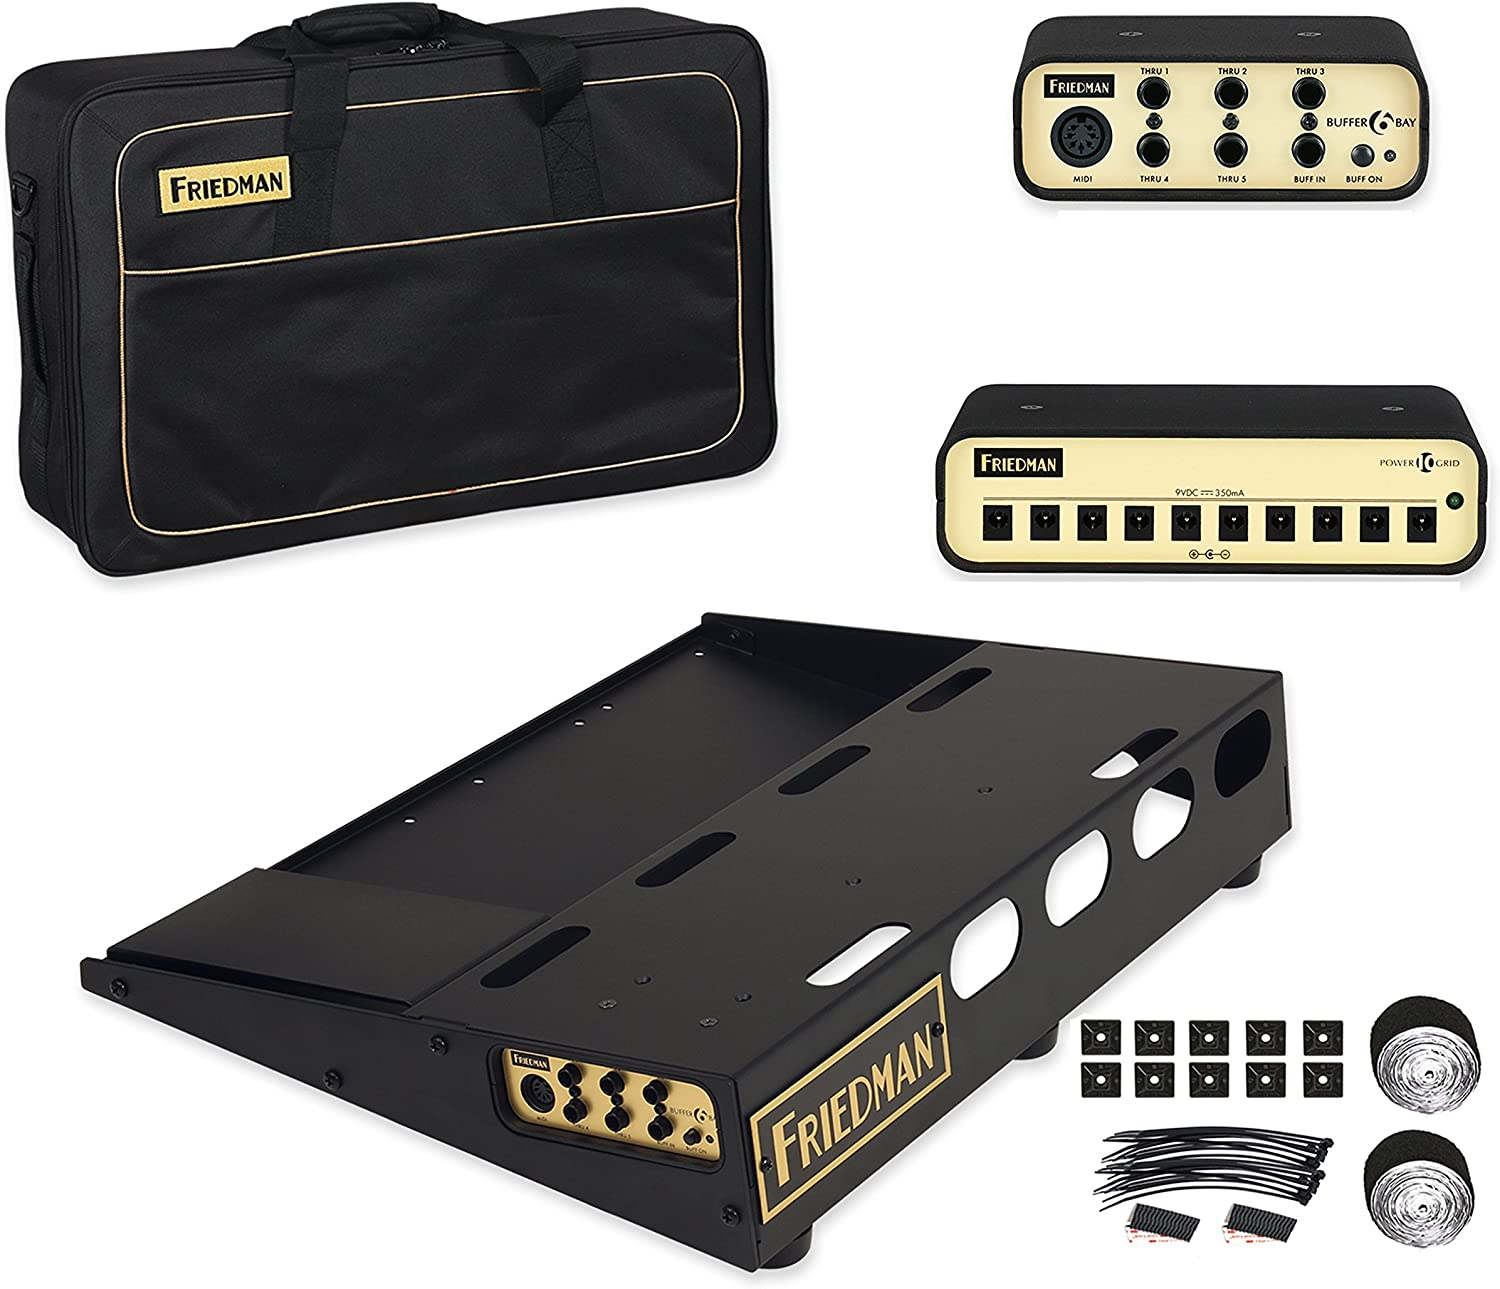 """Friedman Amplification Tour Pro 1520 Platinum Pack 15"""" x 20"""" Pedal Board with Riser, Professional Carrying Bag, Power Grid 10 & Buffer Bay 6"""